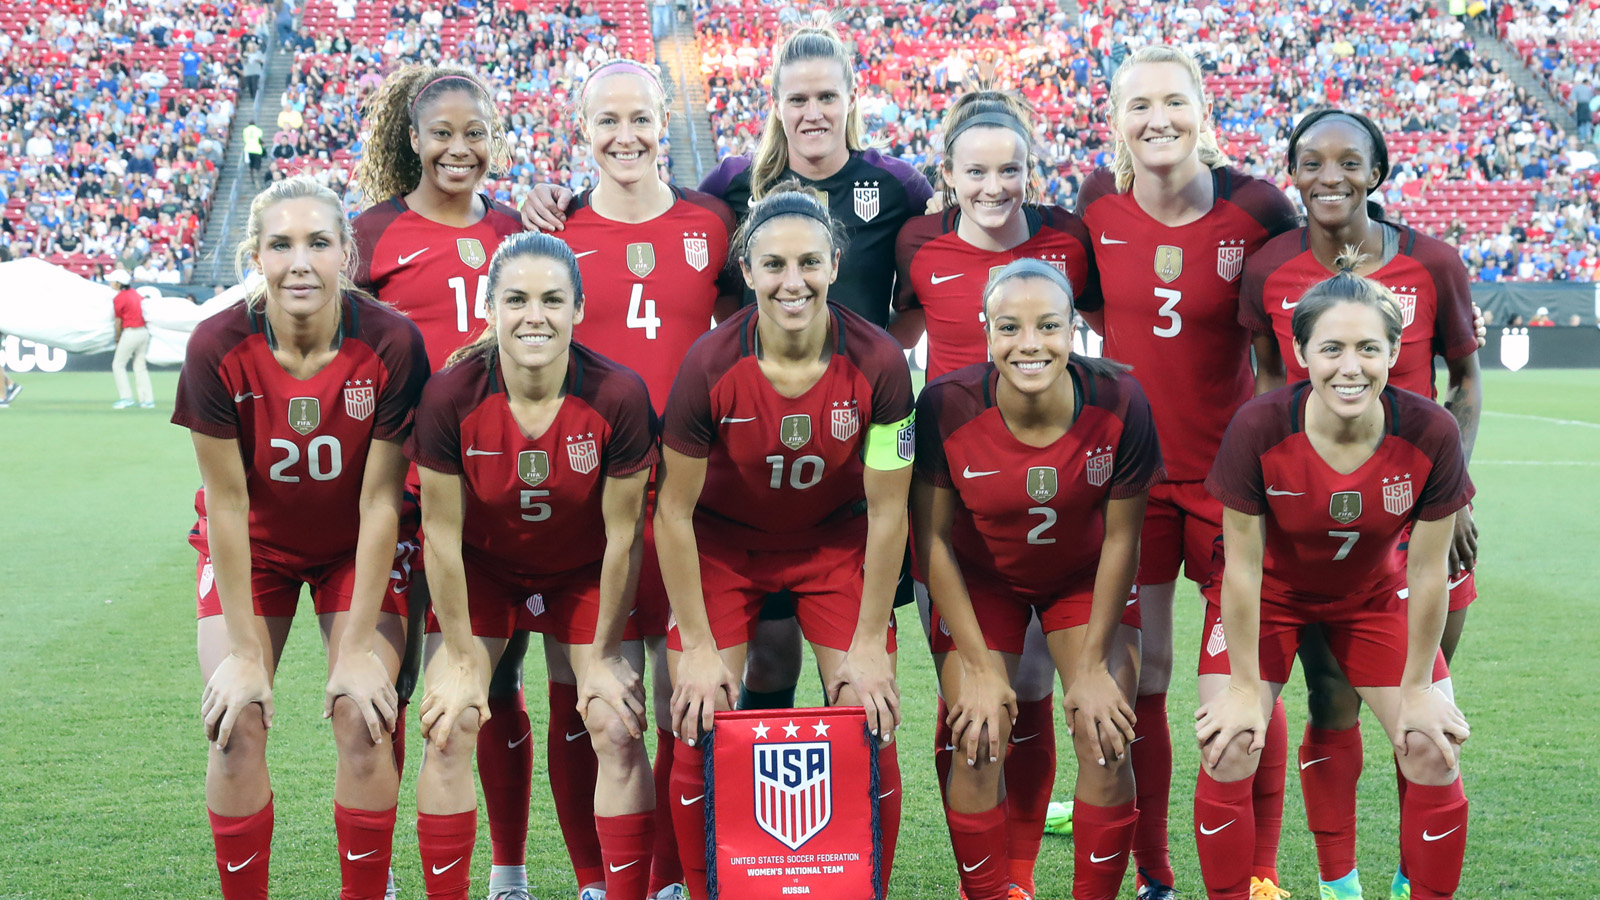 Apr 6, 2017; Frisco, TX, USA; USA women's team pose for a photo prior to the match against Russia at Toyota Stadium. Mandatory Credit: Matthew Emmons-USA TODAY Sports